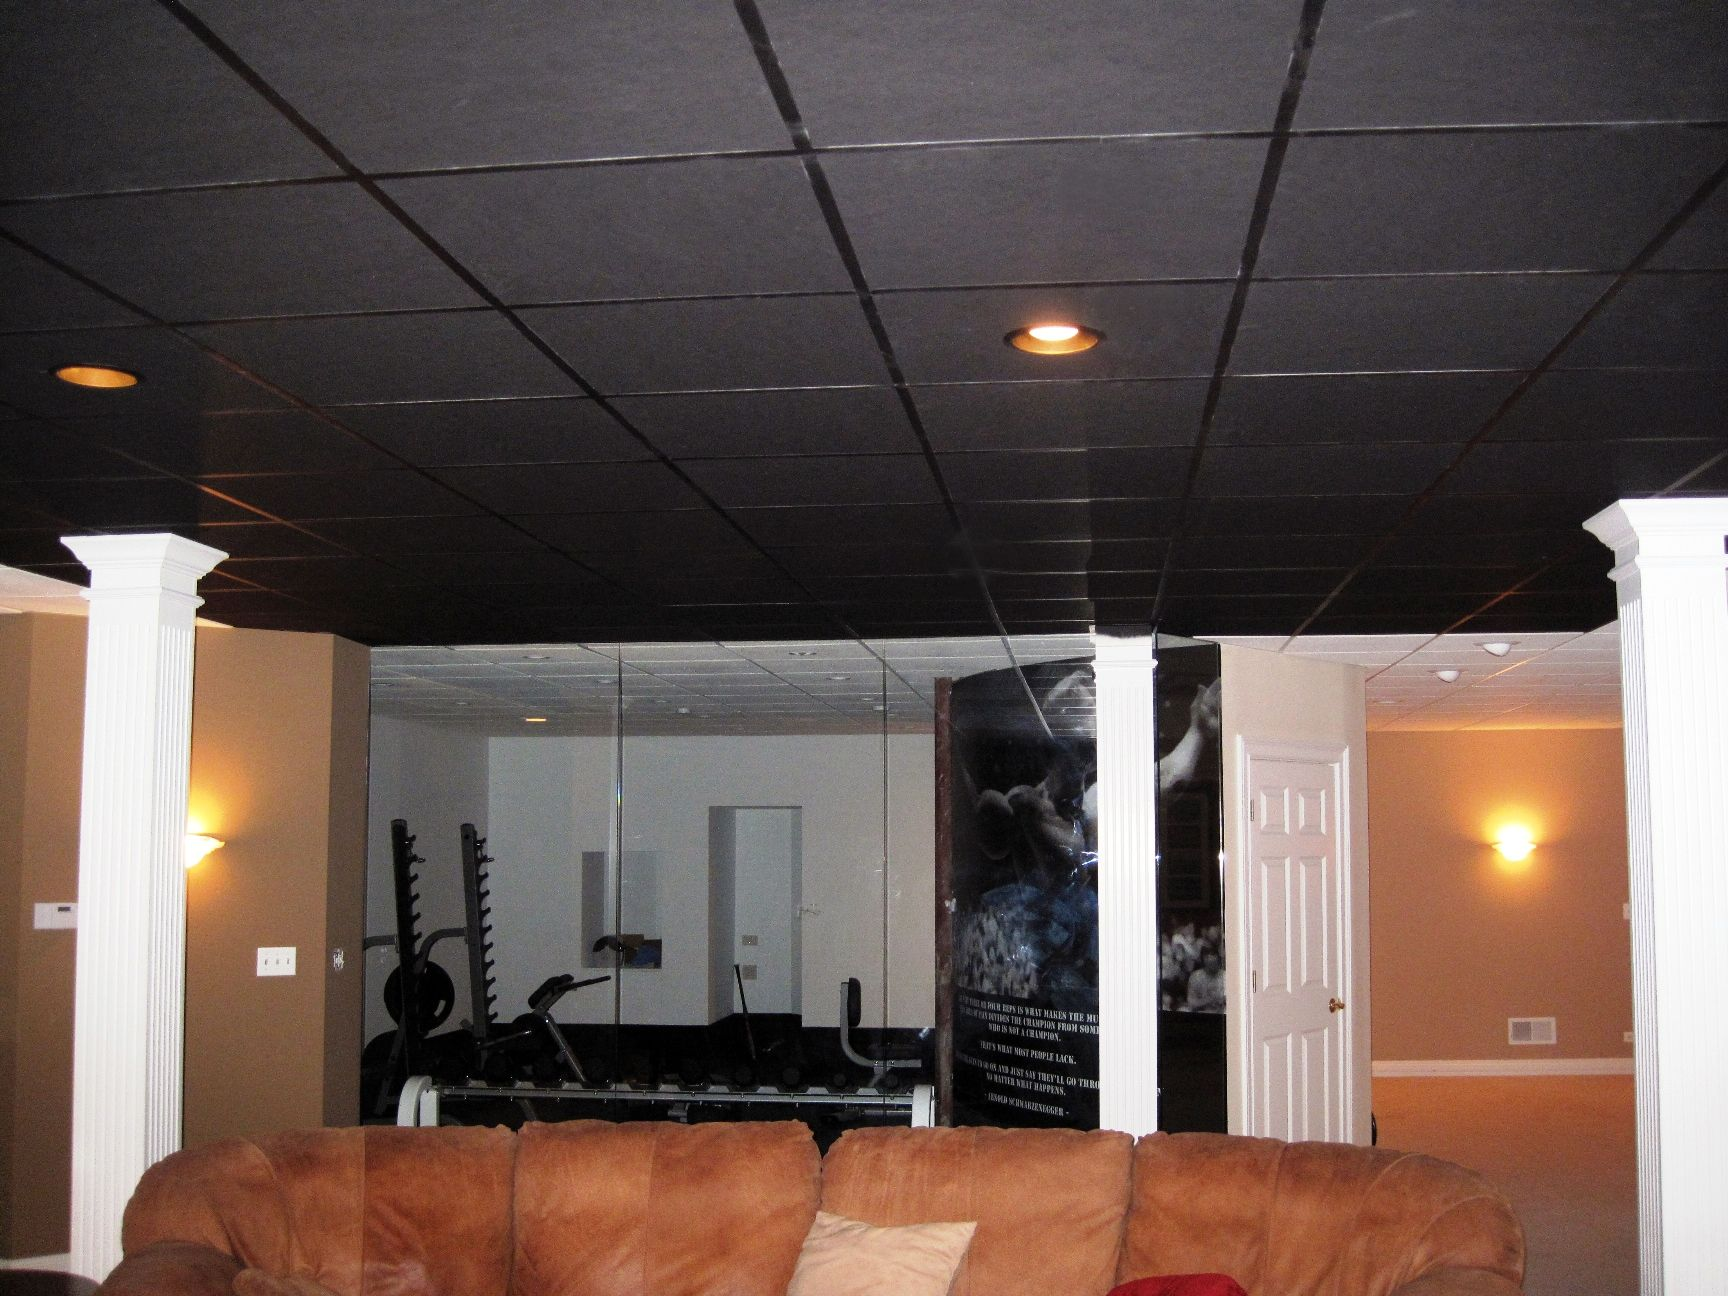 Drop ceiling tiles 24 black httpcreativechairsandtables drop ceiling tiles 24 black dailygadgetfo Images